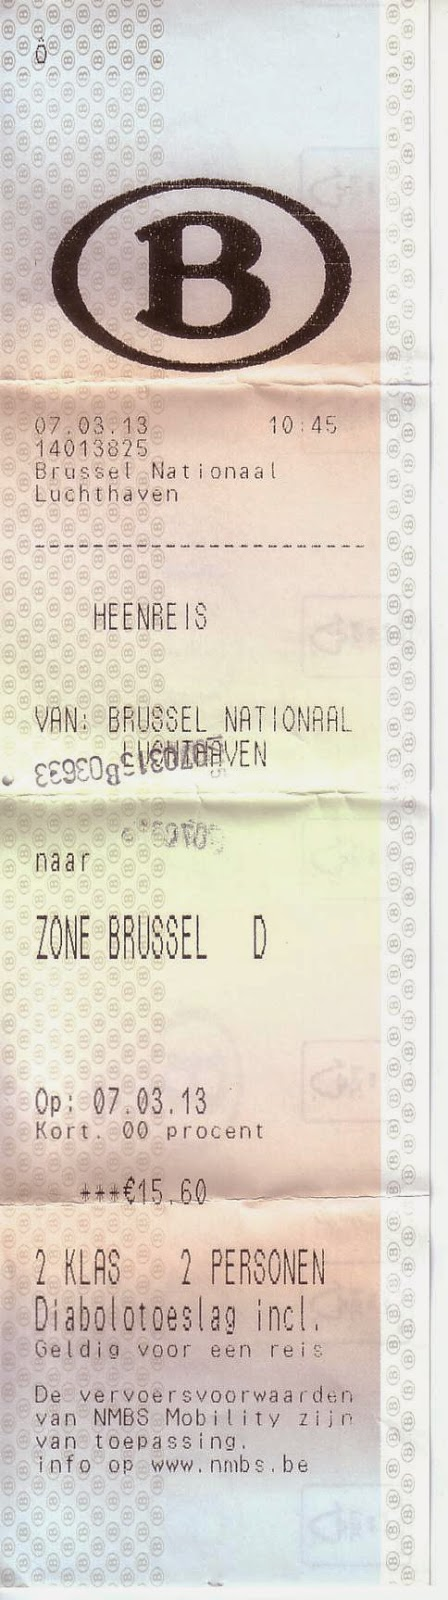 Billete al aeropuerto de Bruselas